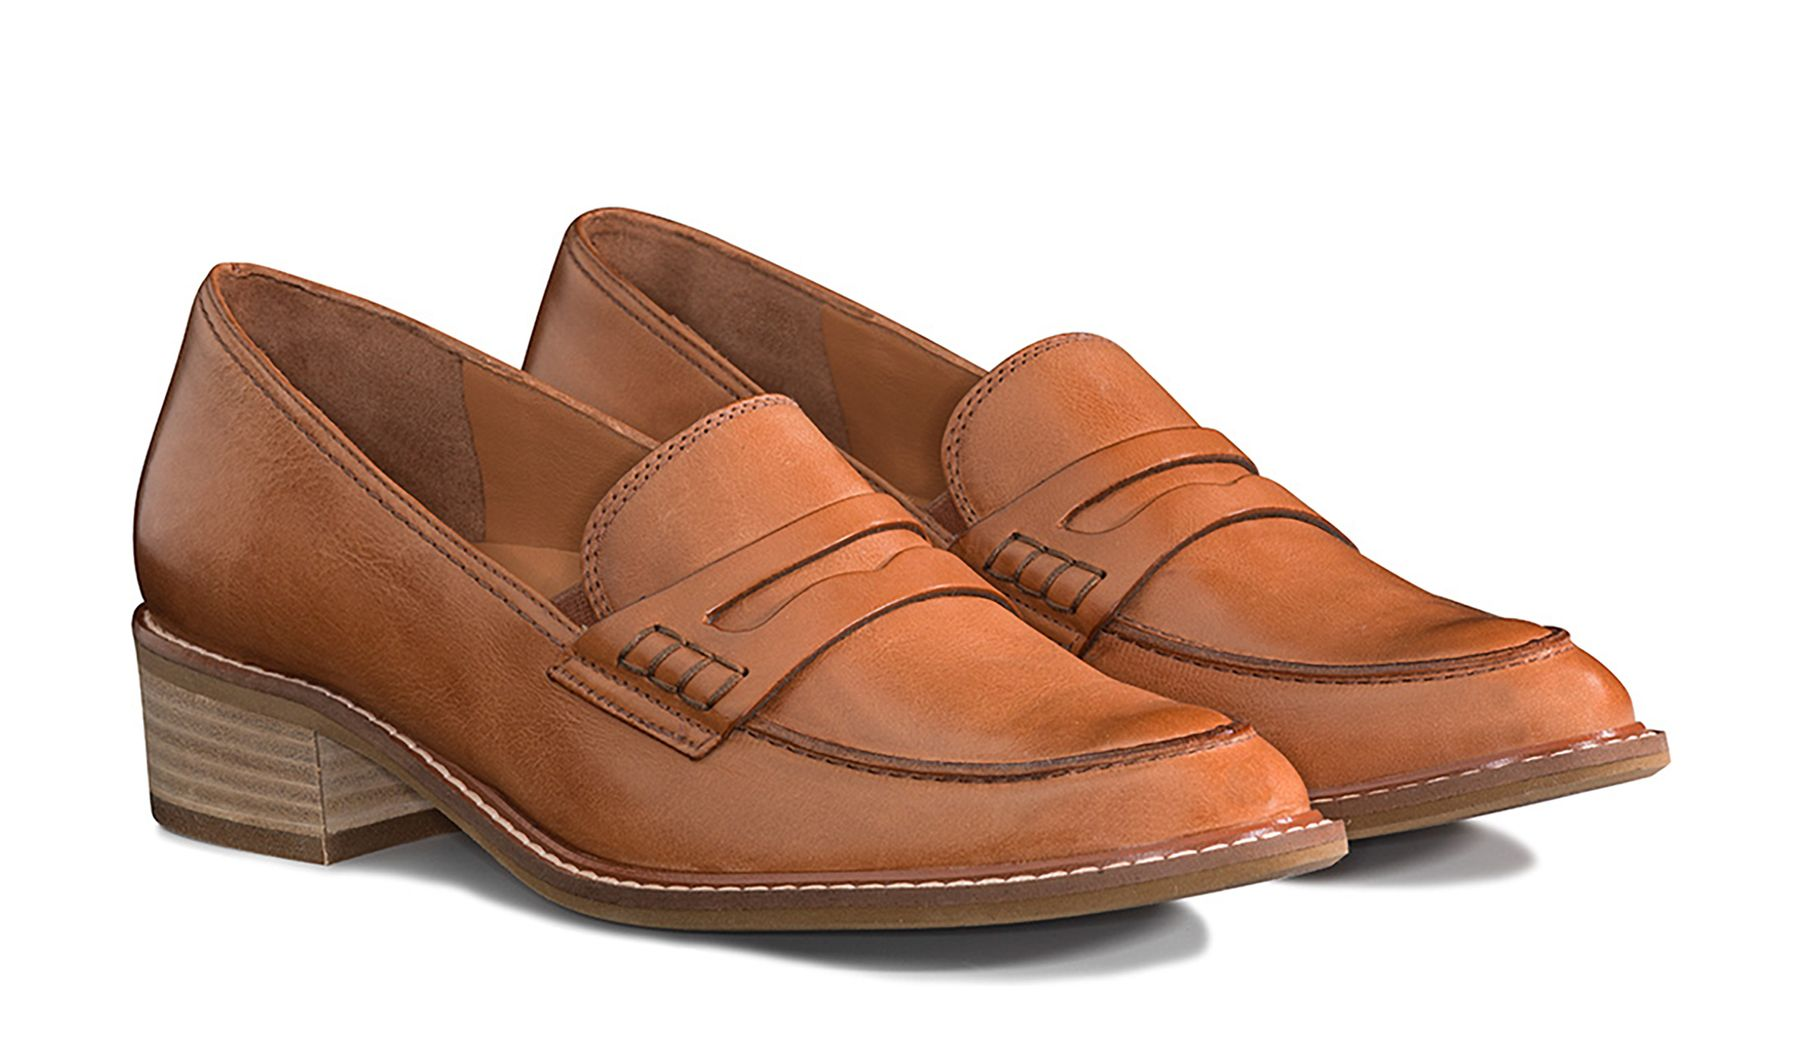 Brauner Loafer in Braun mit Lederrahmen - Paul Green